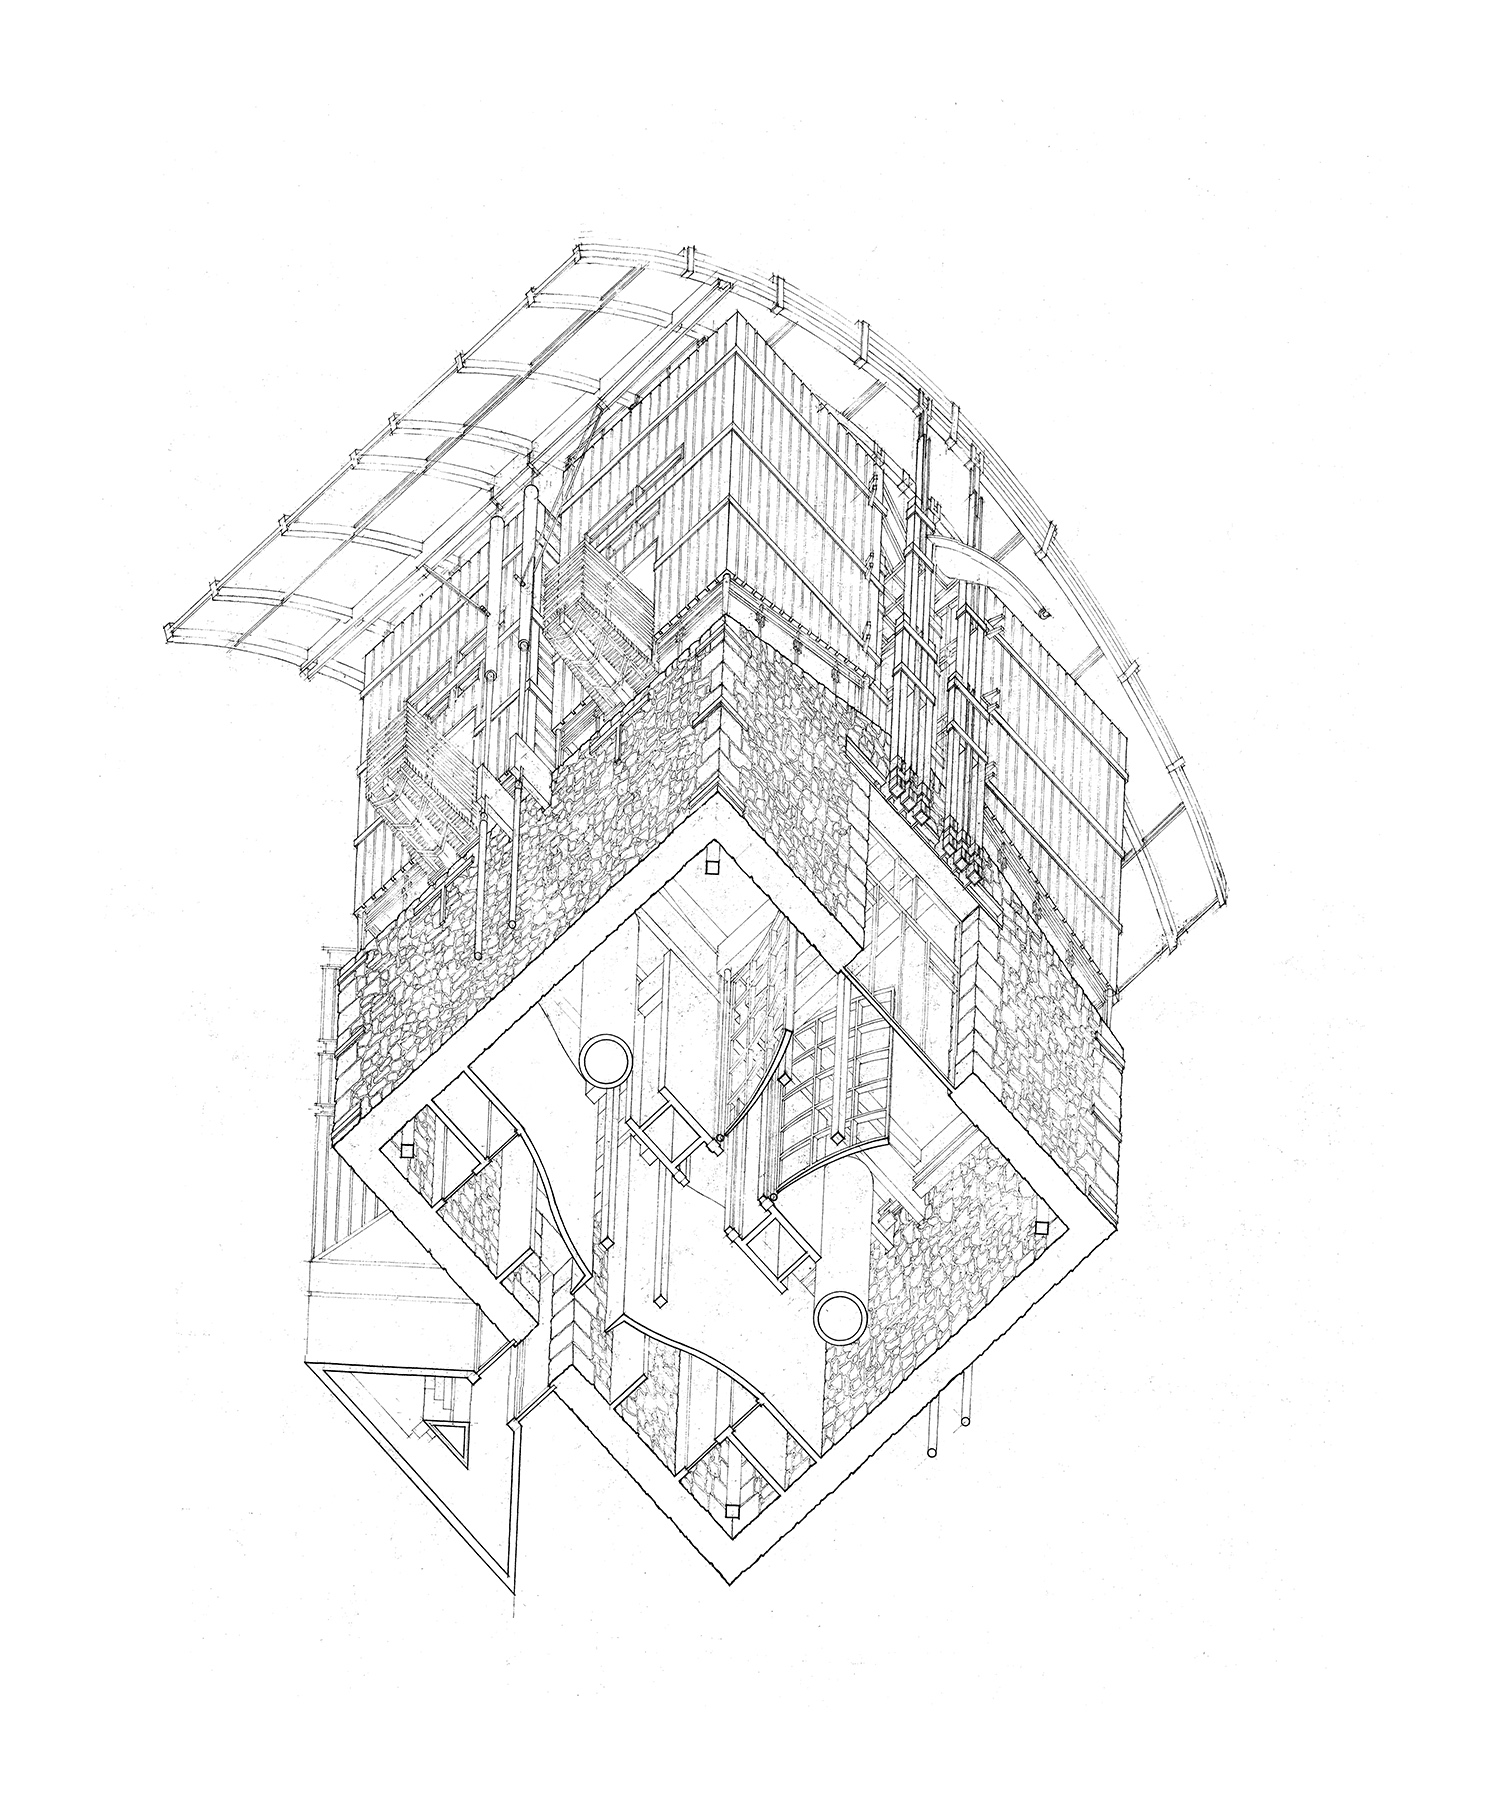 Worms Eye Axonometric Drawing